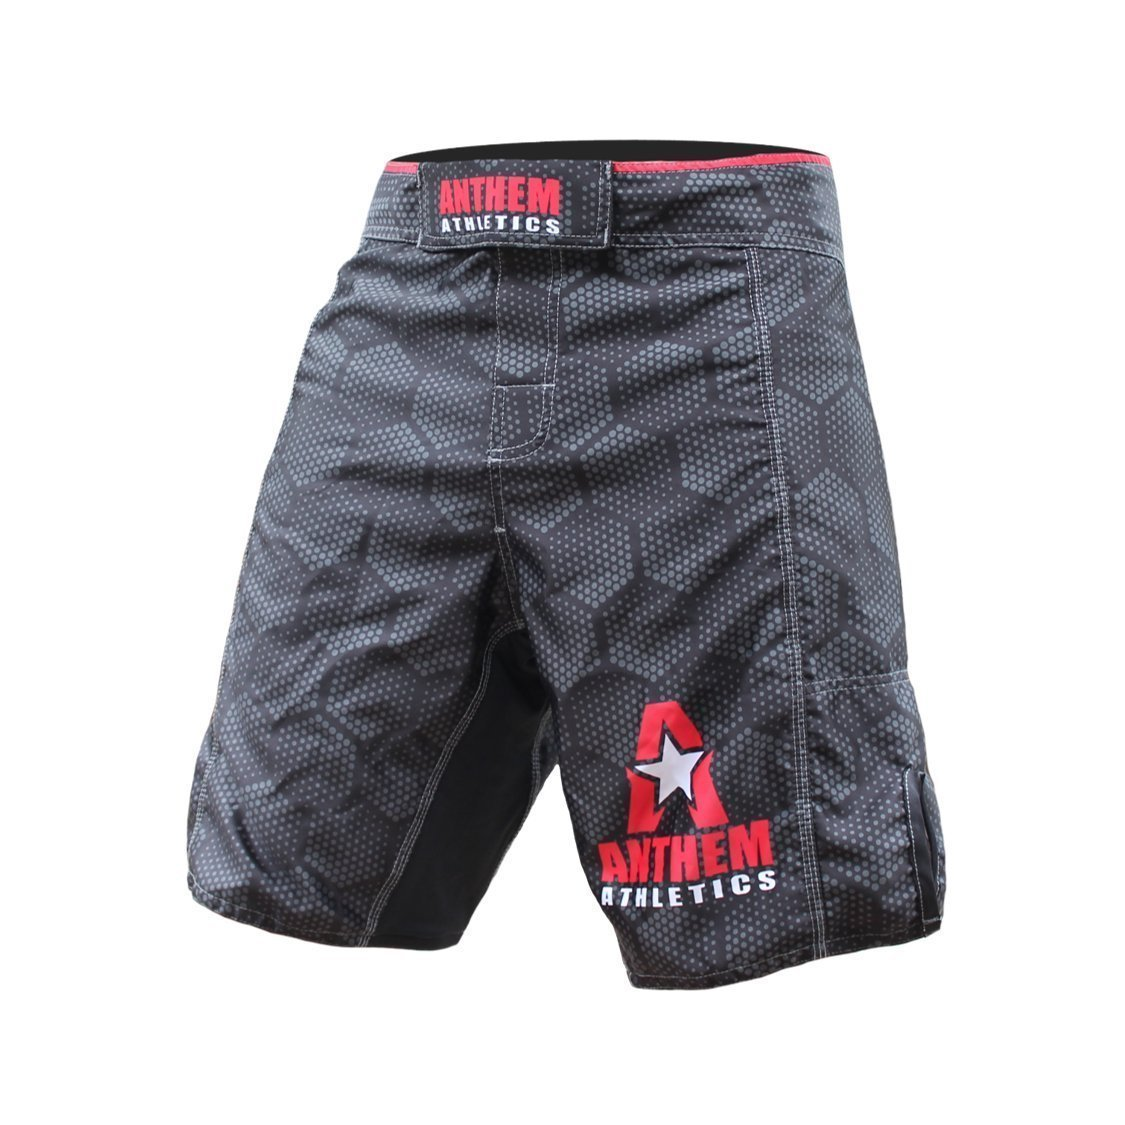 Anthem Athletics RESILIENCE MMA Shorts - Black Hex With Red - 33''